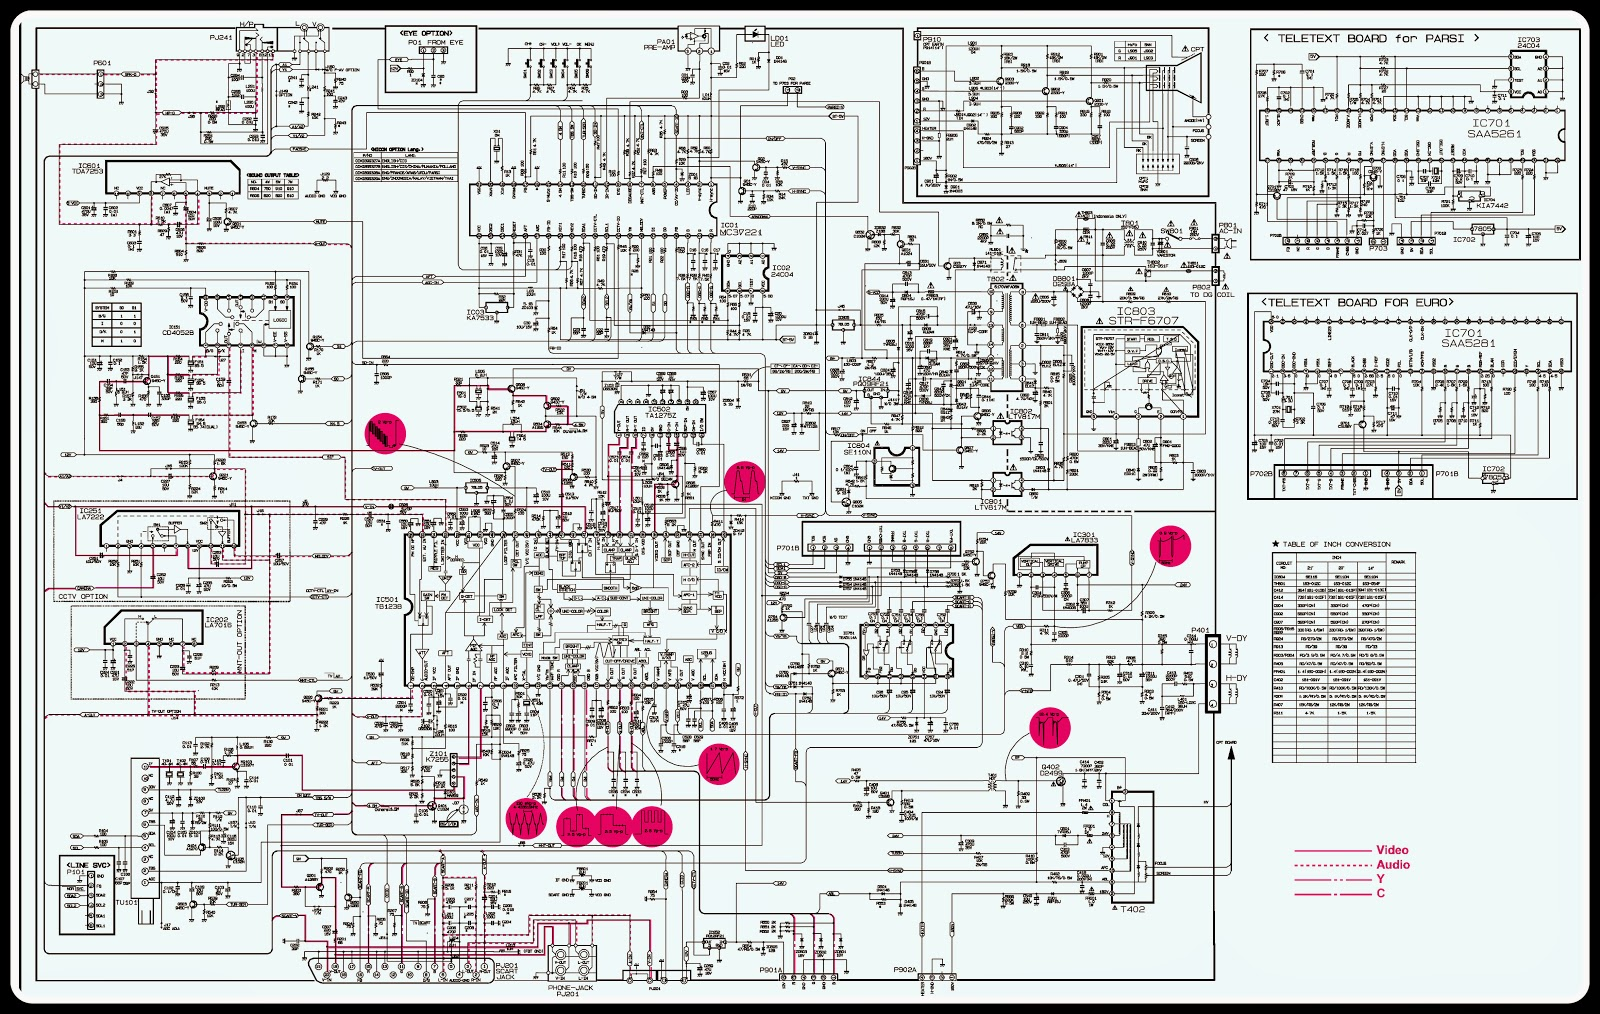 medium resolution of lg cf20f schematic circuit diagram 20 inch crt tv electro help samsung tv diagram crt tv power diagram